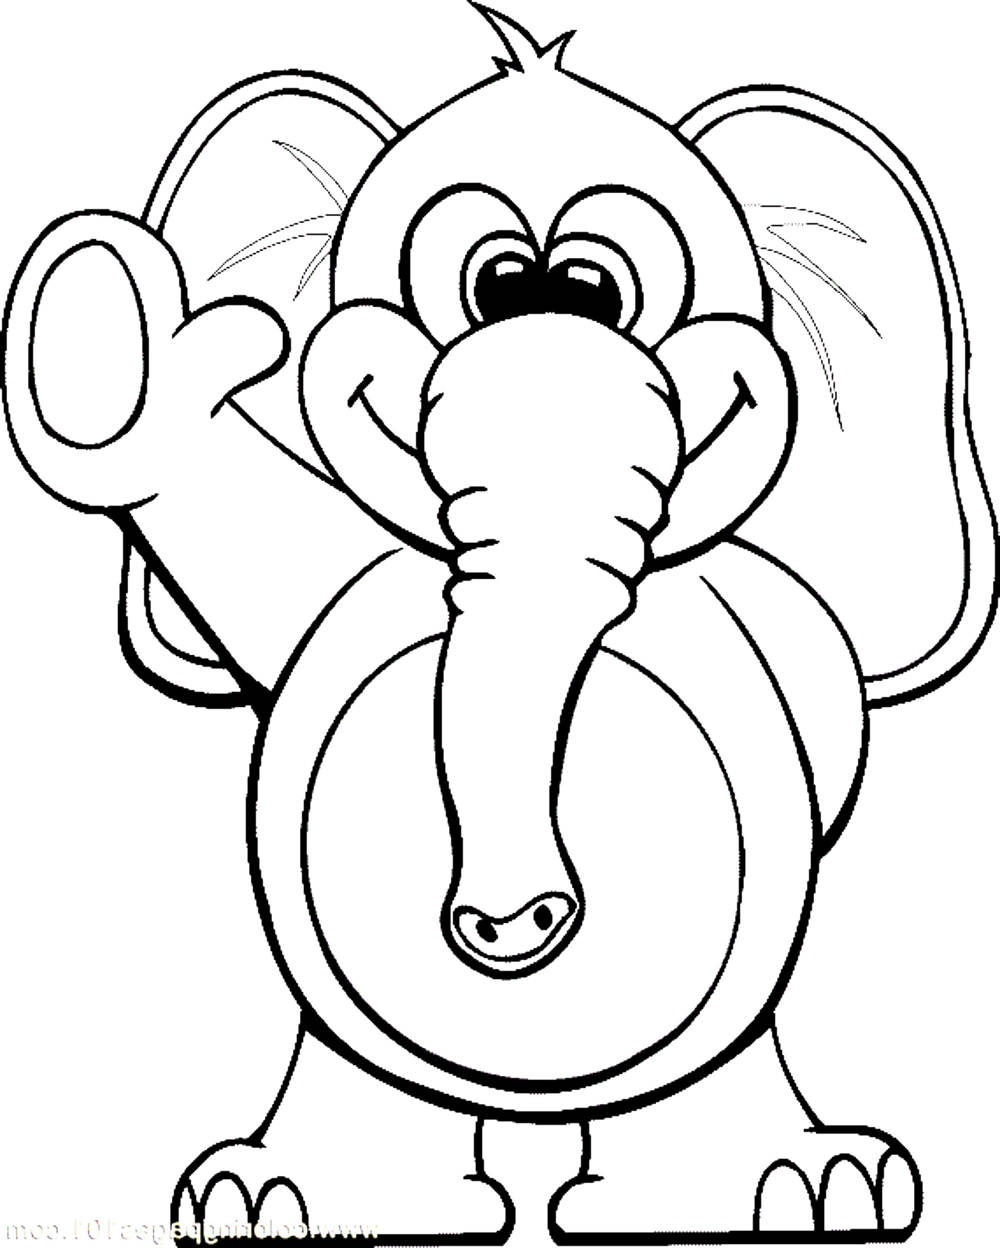 elephant color pages print download teaching kids through elephant coloring elephant pages color